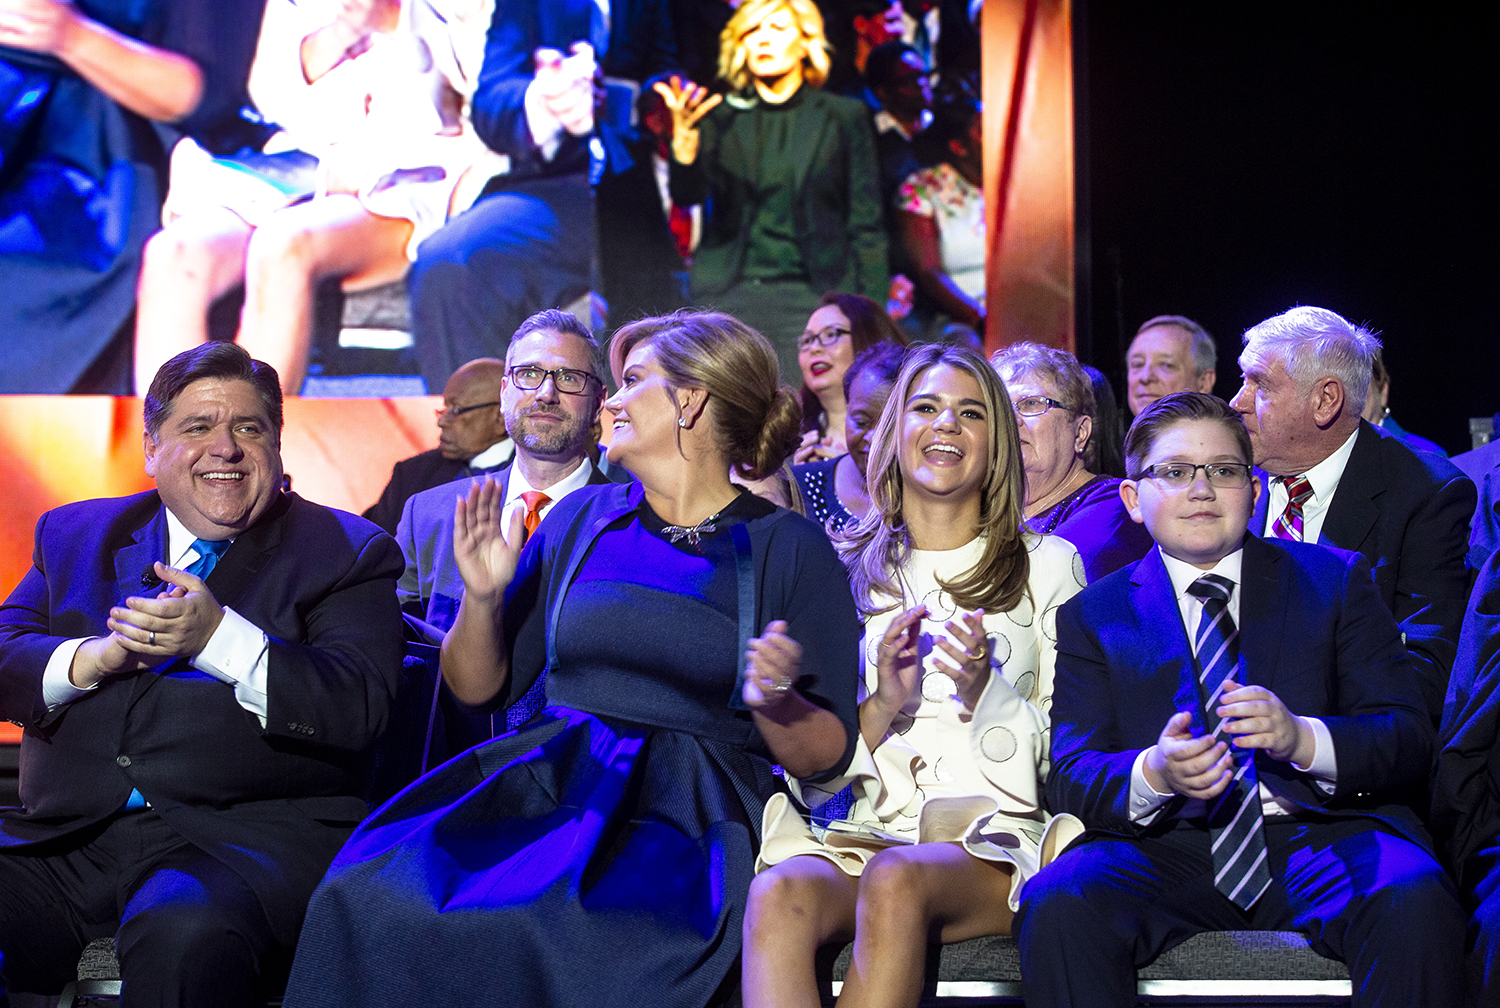 """The Pritzker family, Gov.-elect J.B., his wife M.K. and their children, Teddi and Donny, join in on a performance of """"We Are Family"""" by Soul Children of Chicago during the Illinois Inaugural Ceremony Monday, Jan. 14, 2019 a the Bank of Springfield Center in Springfield, Ill. [Rich Saal/The State Journal-Register]"""